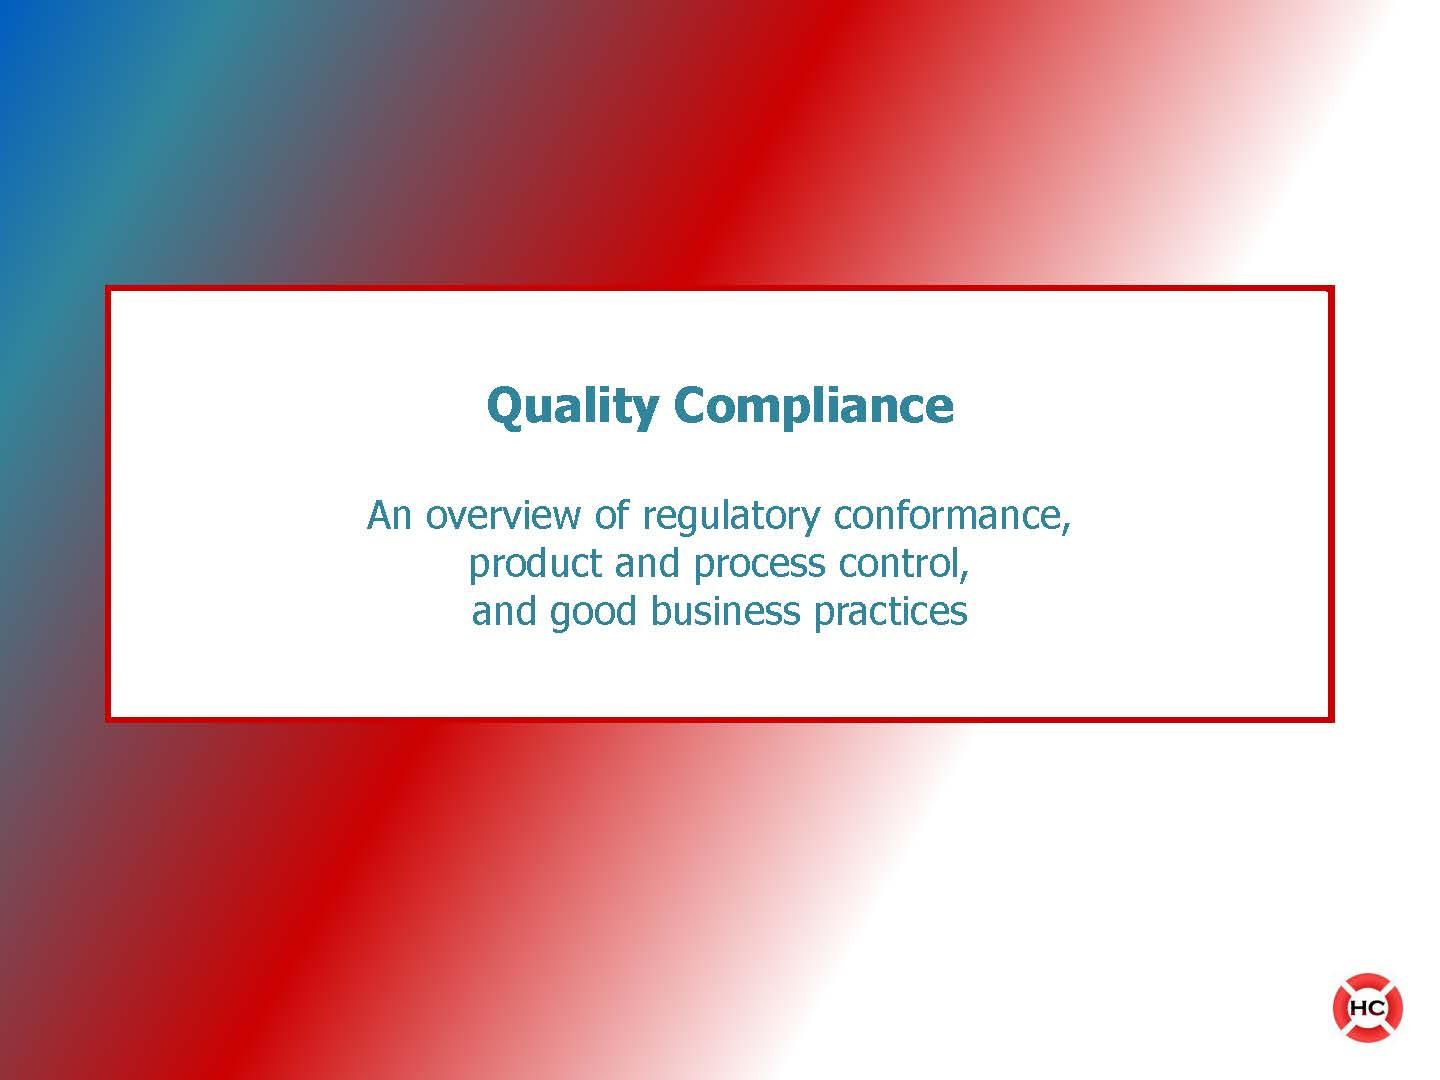 Training Presentation - High Level Compliance Overview